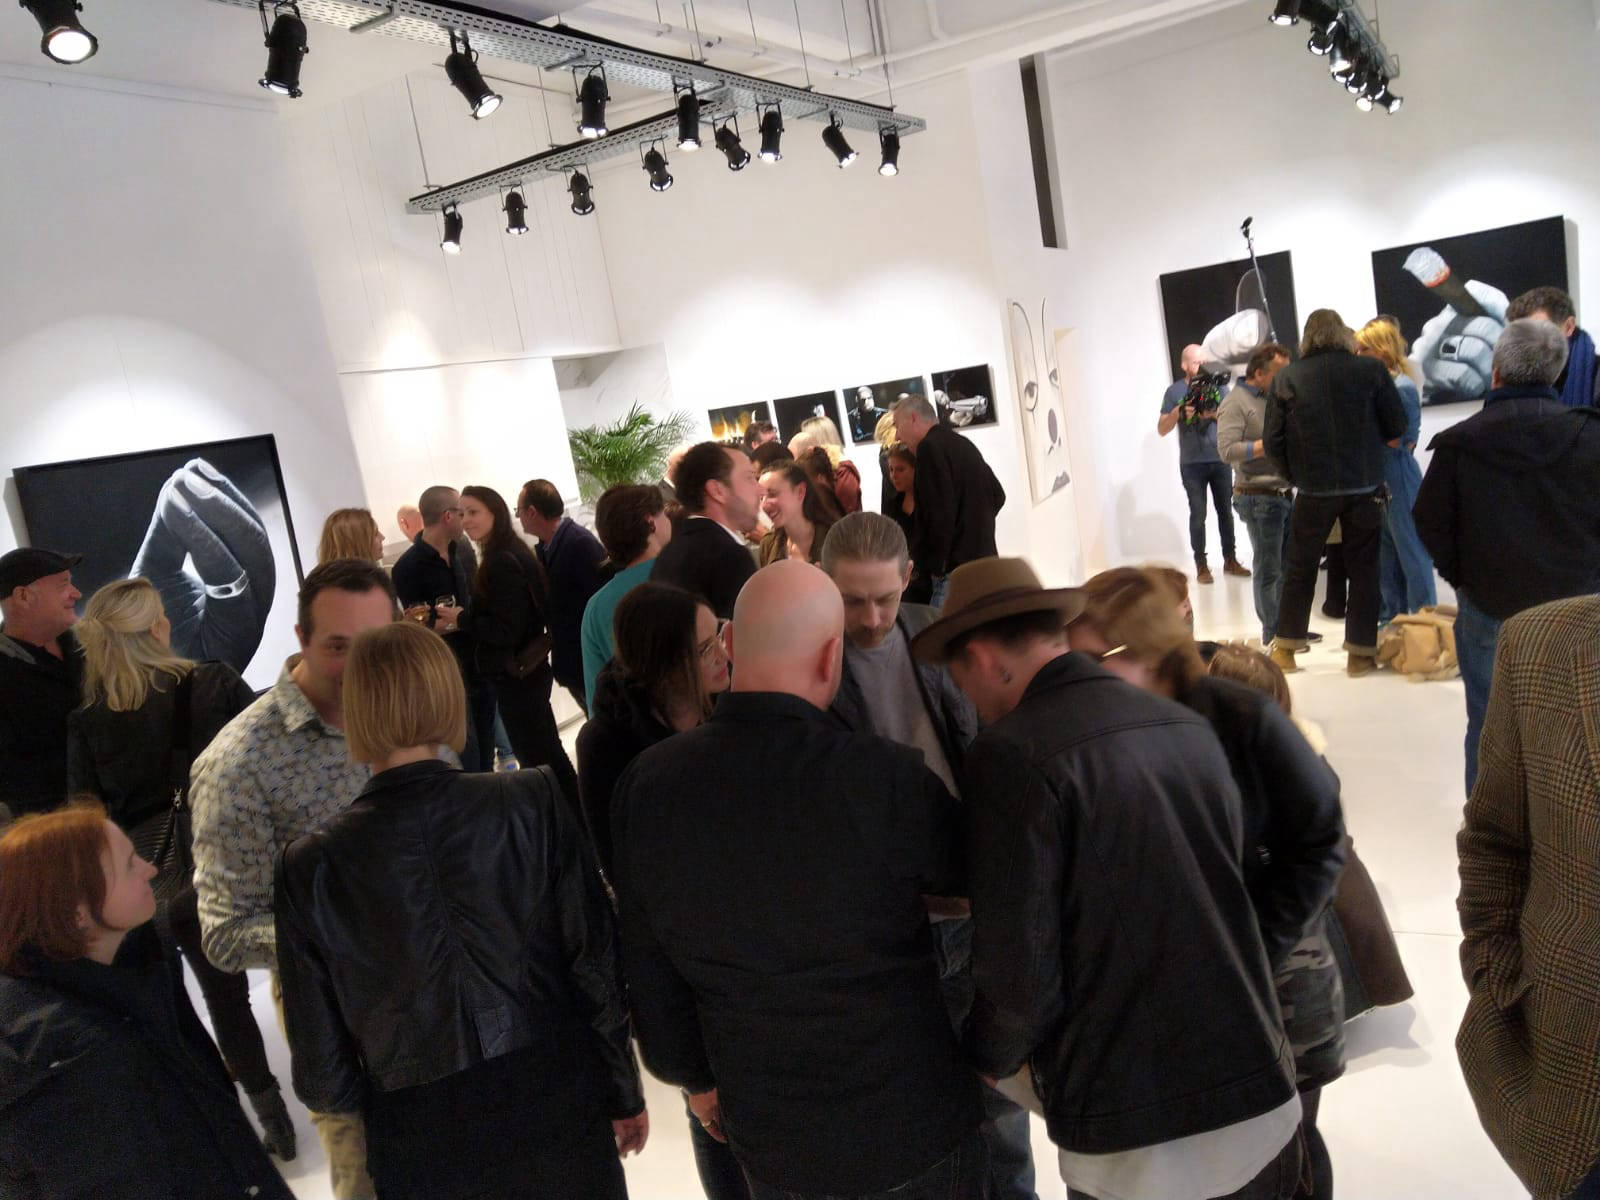 MANOU KERSTING in NATIONAL 55 Kunstgalerij Antwerpen